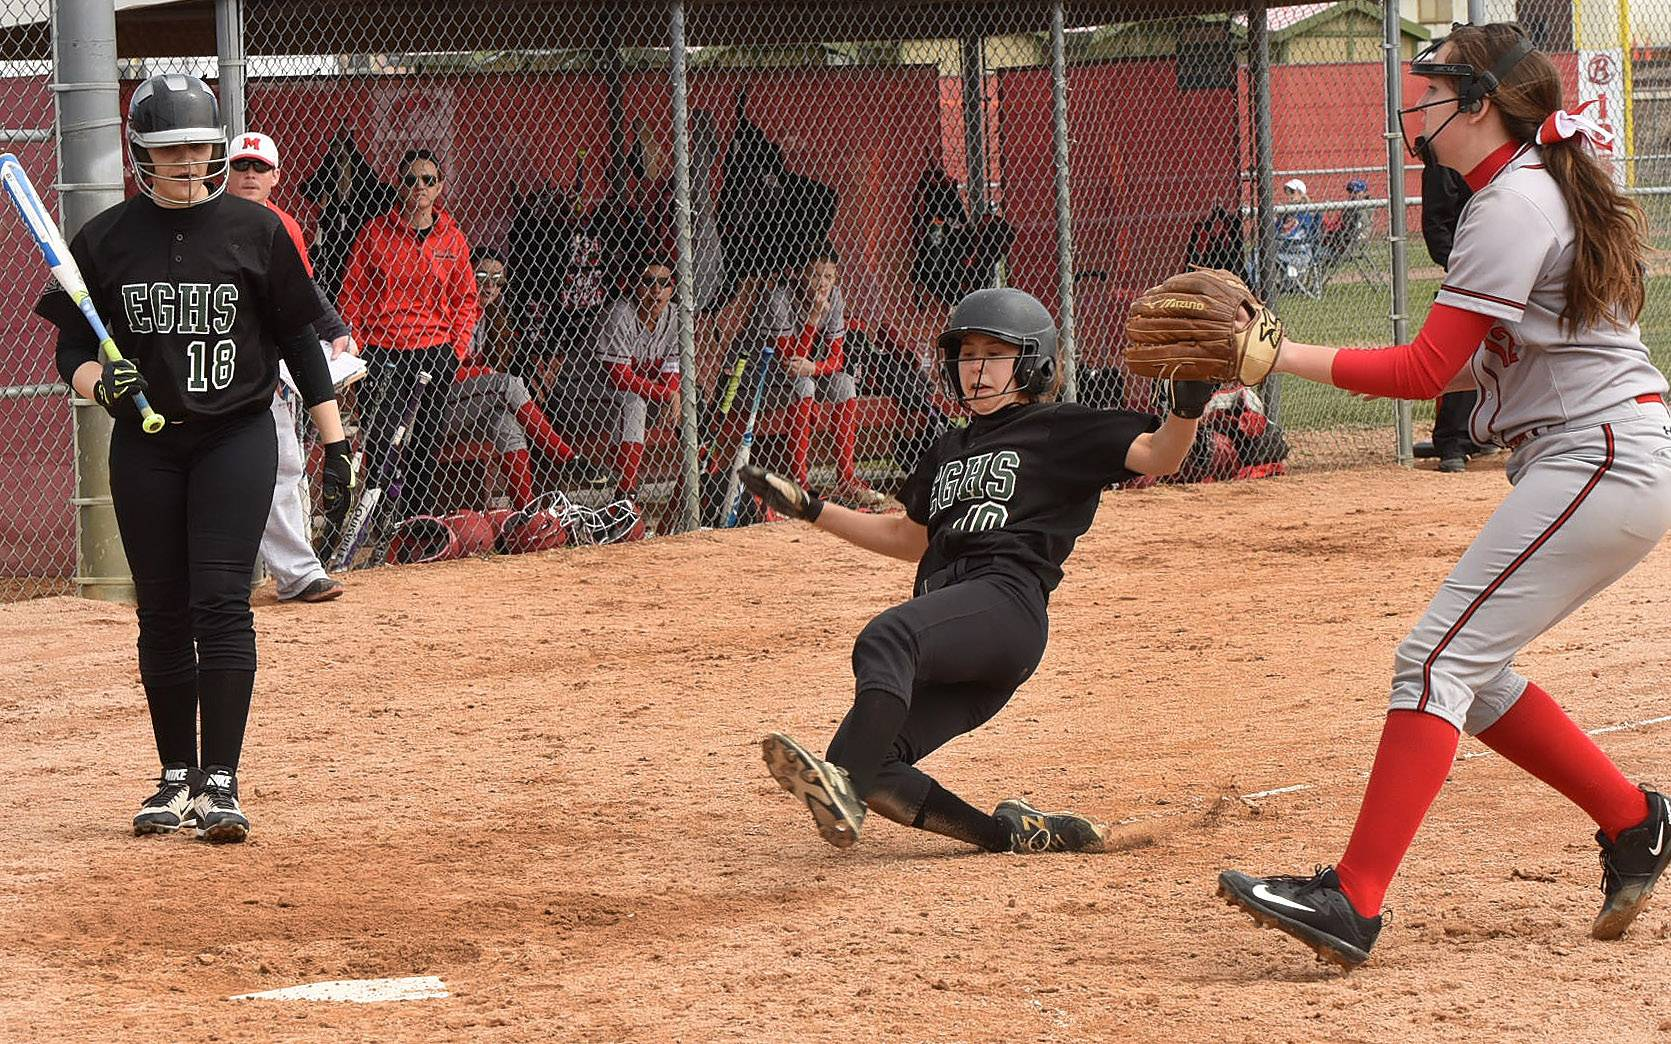 Elk Grove's Jessica Kearns scores on a wild pitch against Mundelein at Barrington's Fields of Dreams.